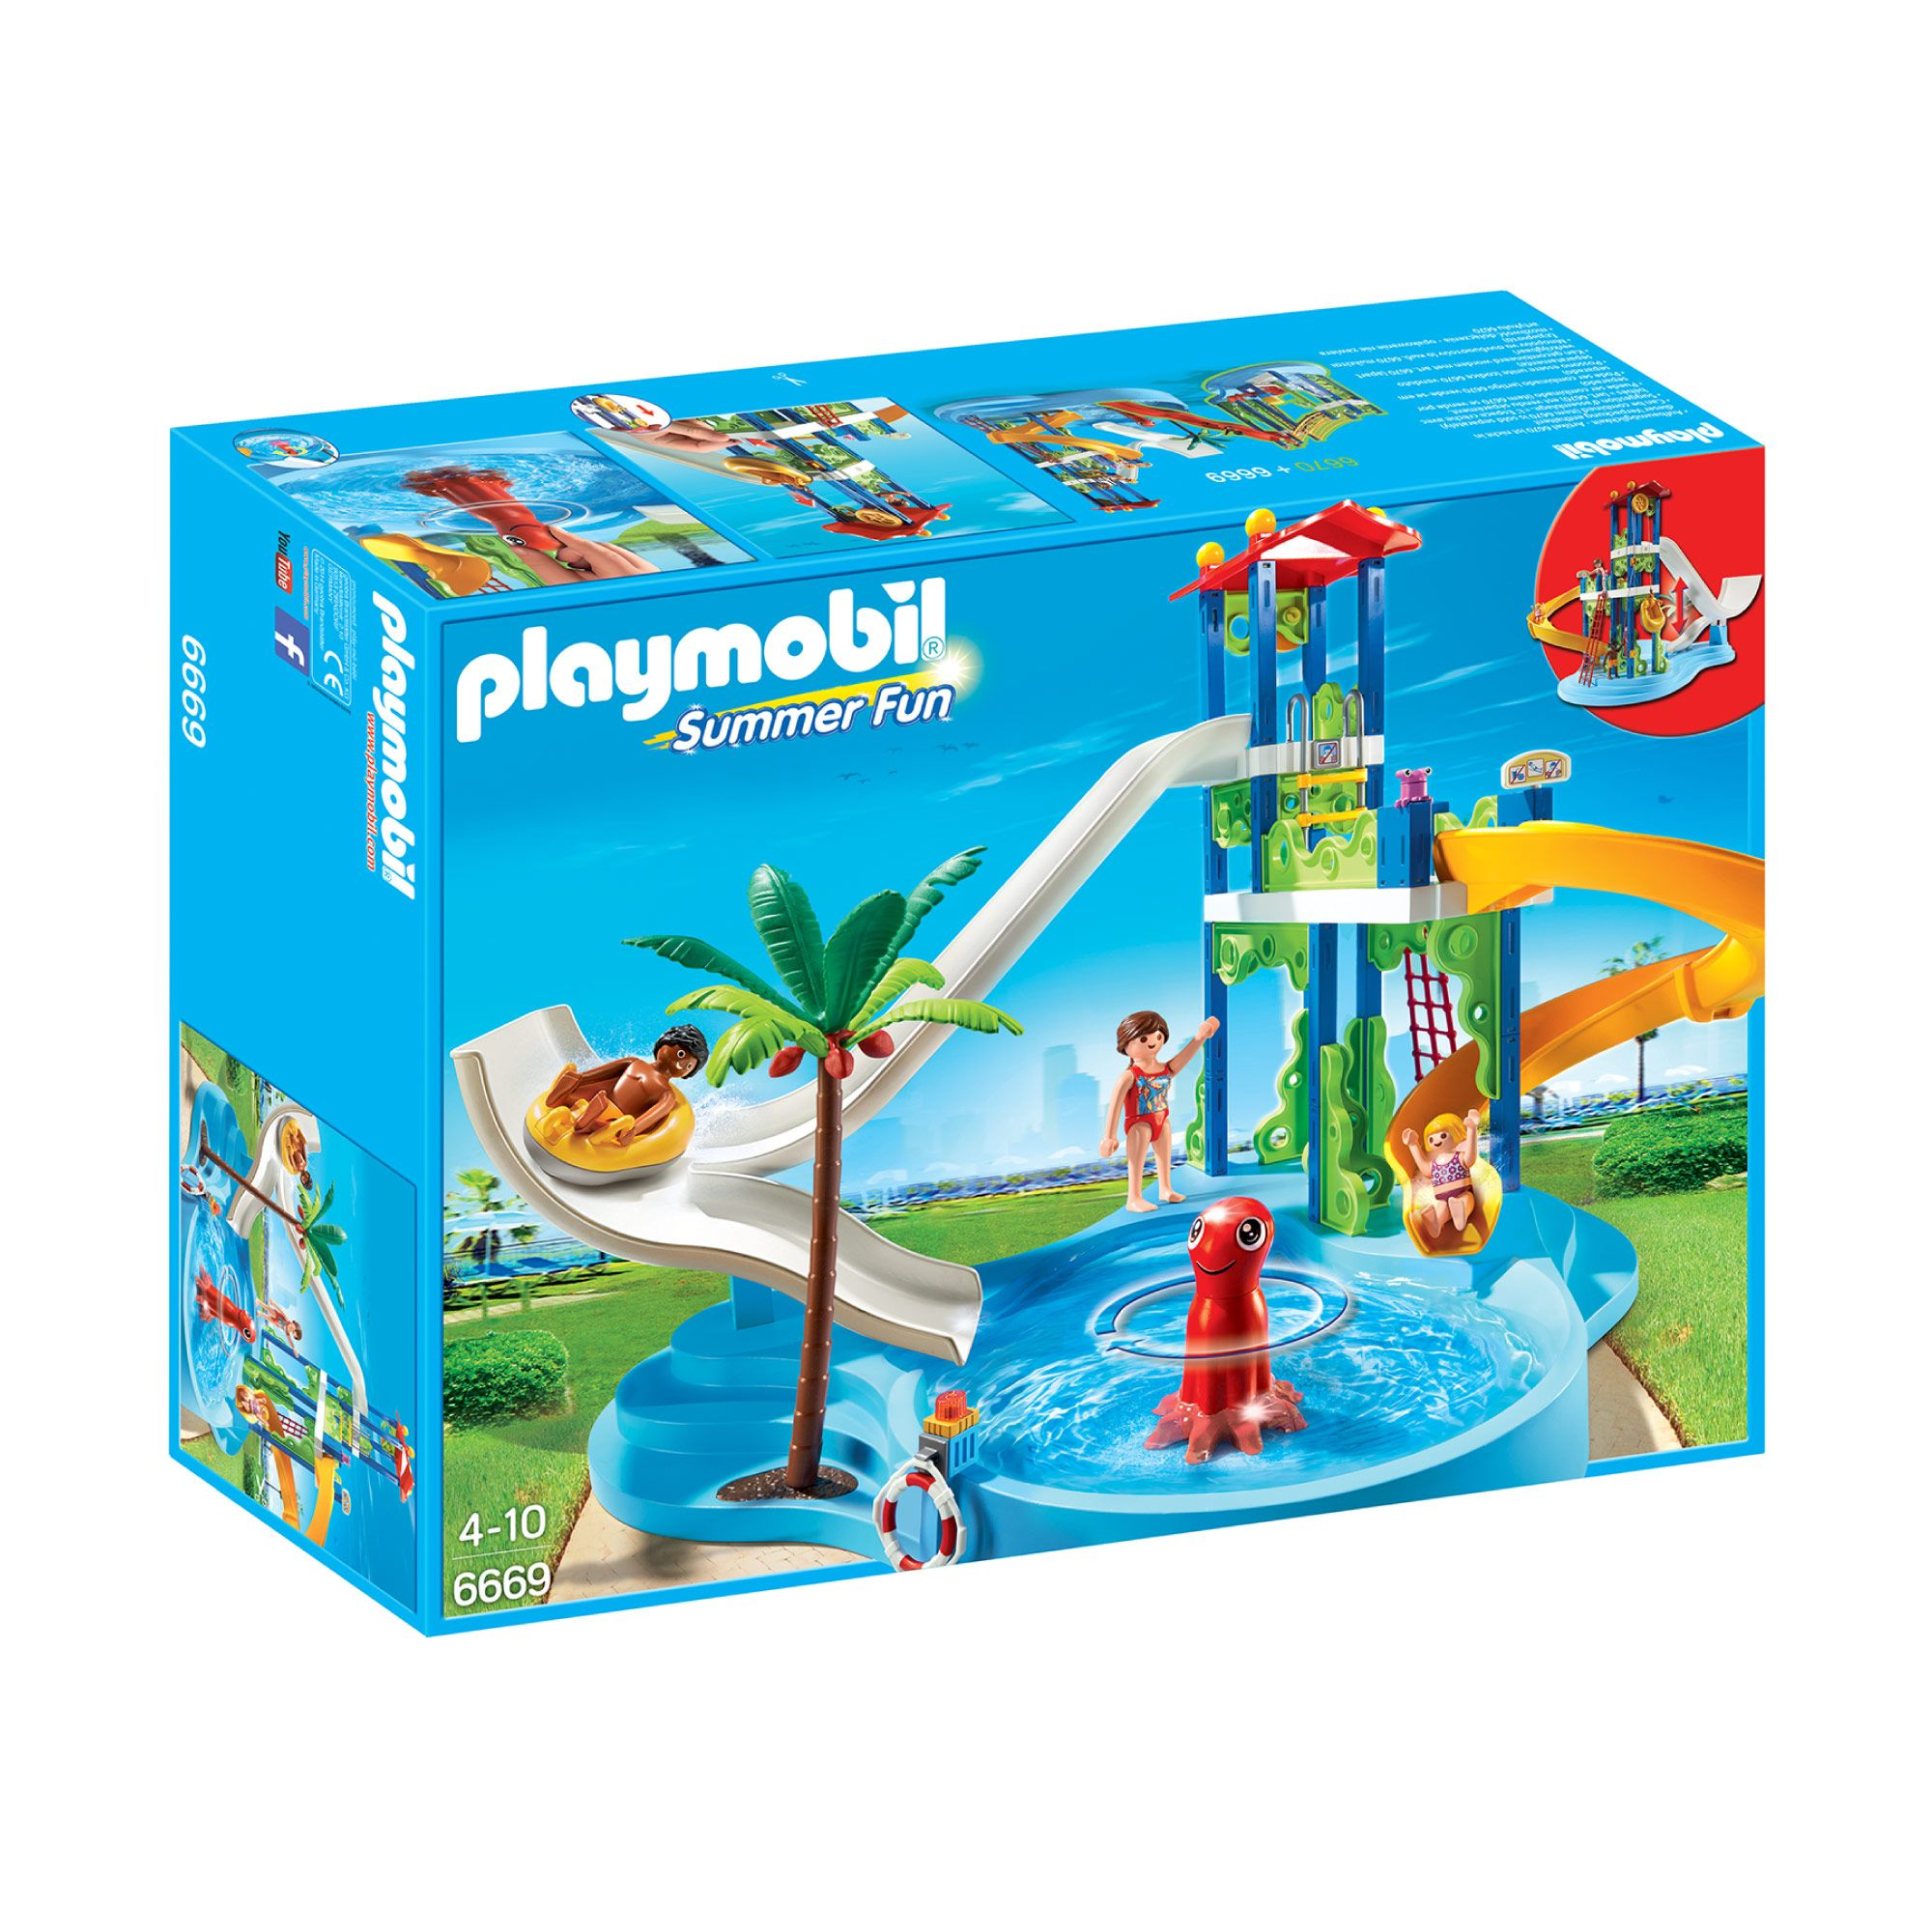 Buy cheap playmobil swimming pool compare products - Playmobil swimming pool best price ...